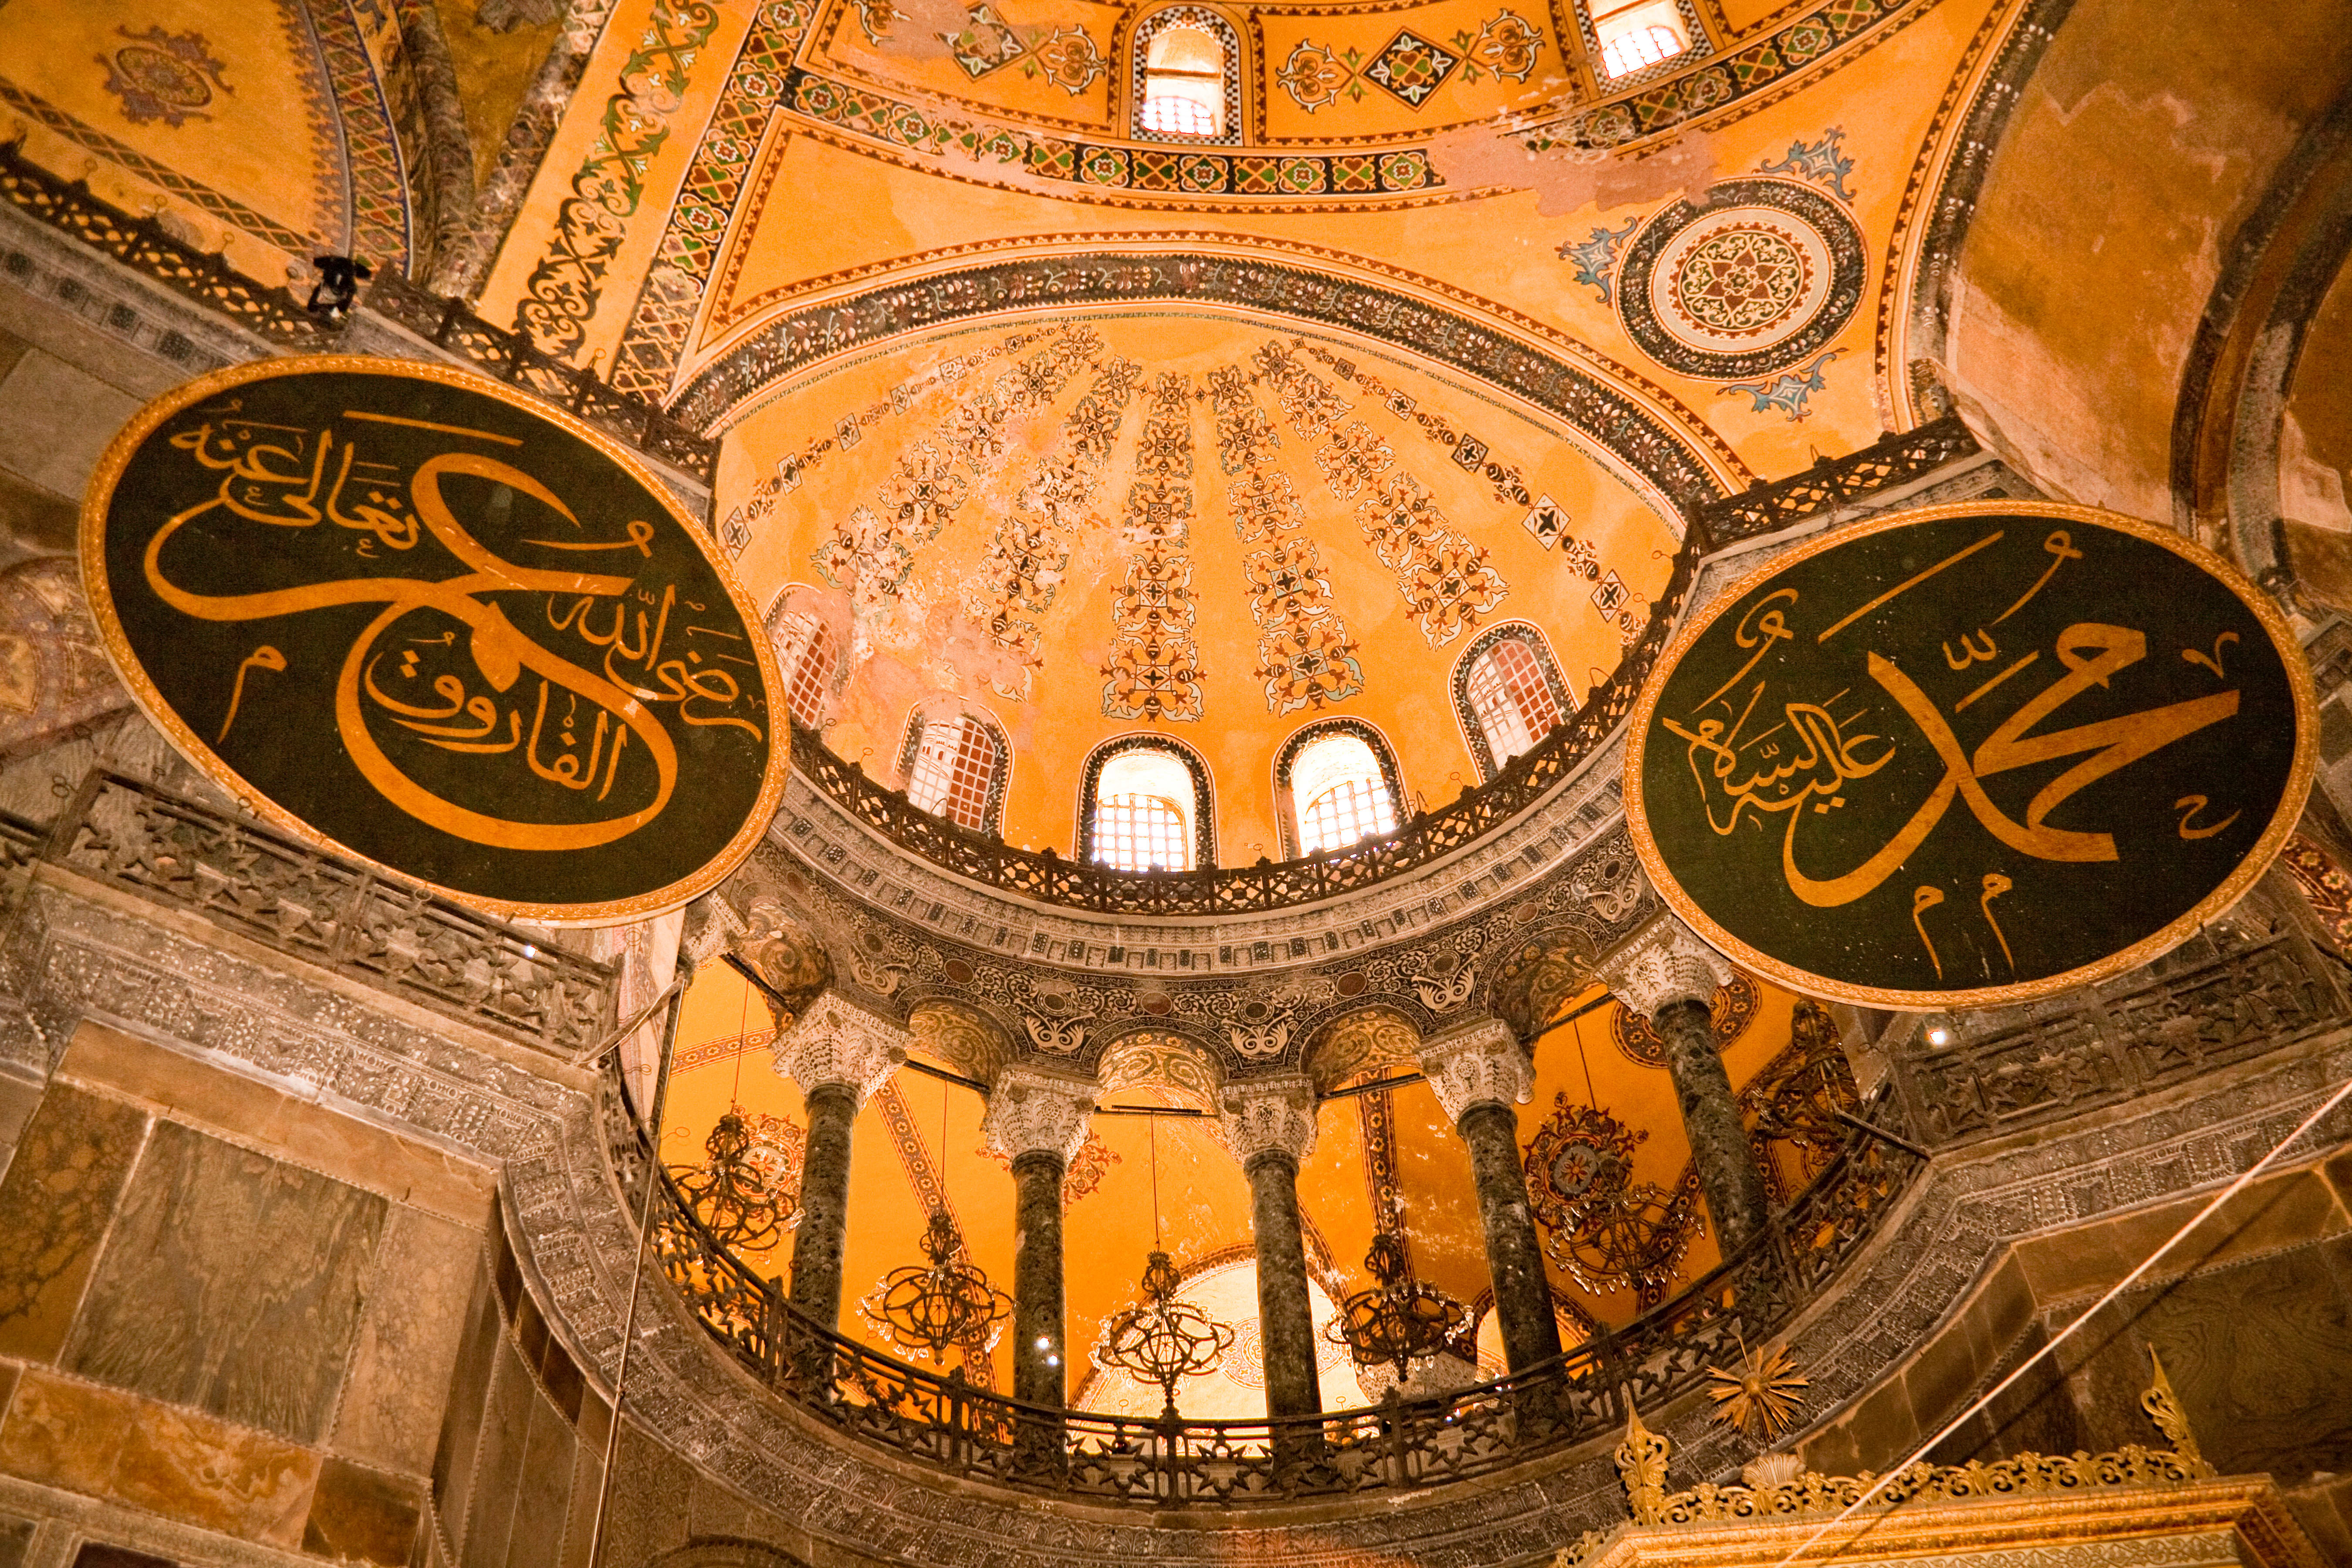 Picture of the ceiling and balcony inside Haghia Sophia Mosque, Turkey, Istanbul